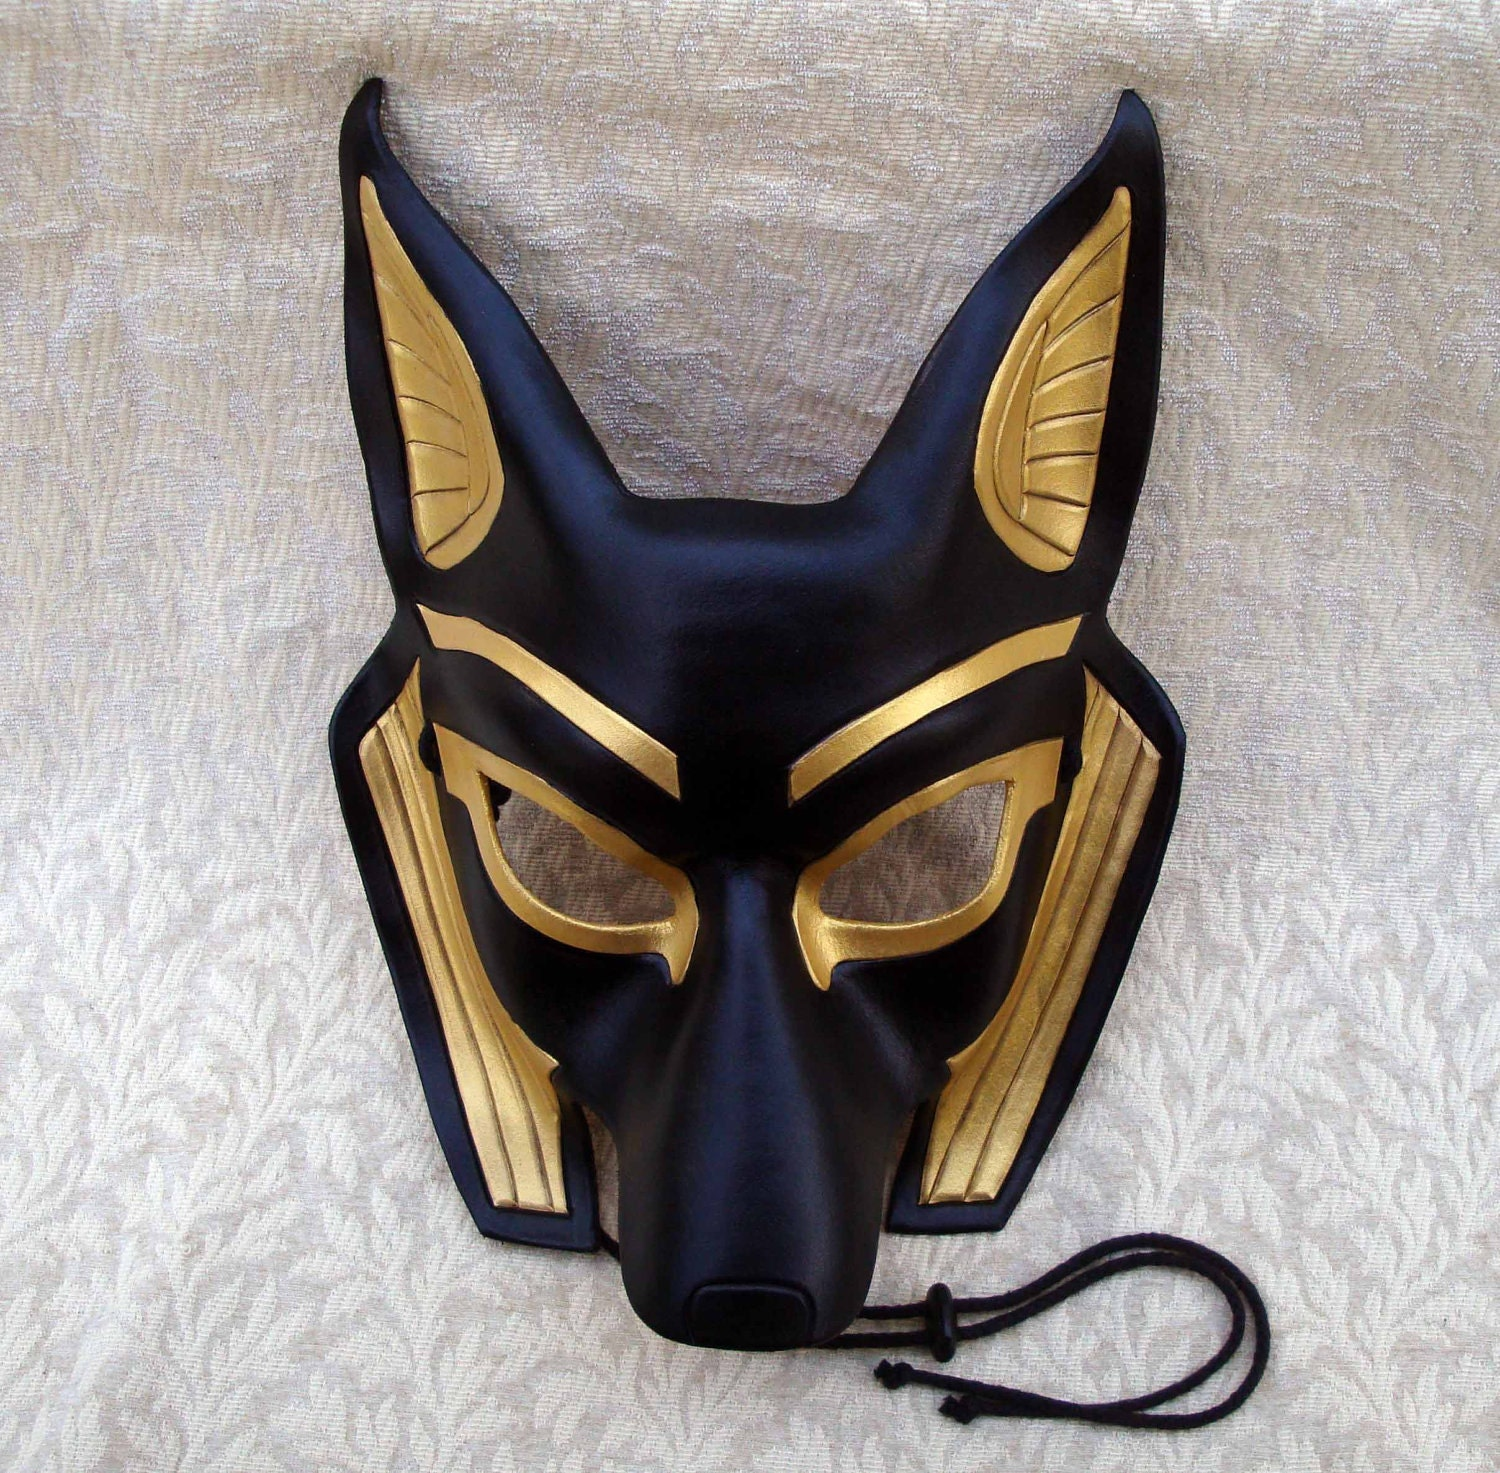 Ancient anubis mask